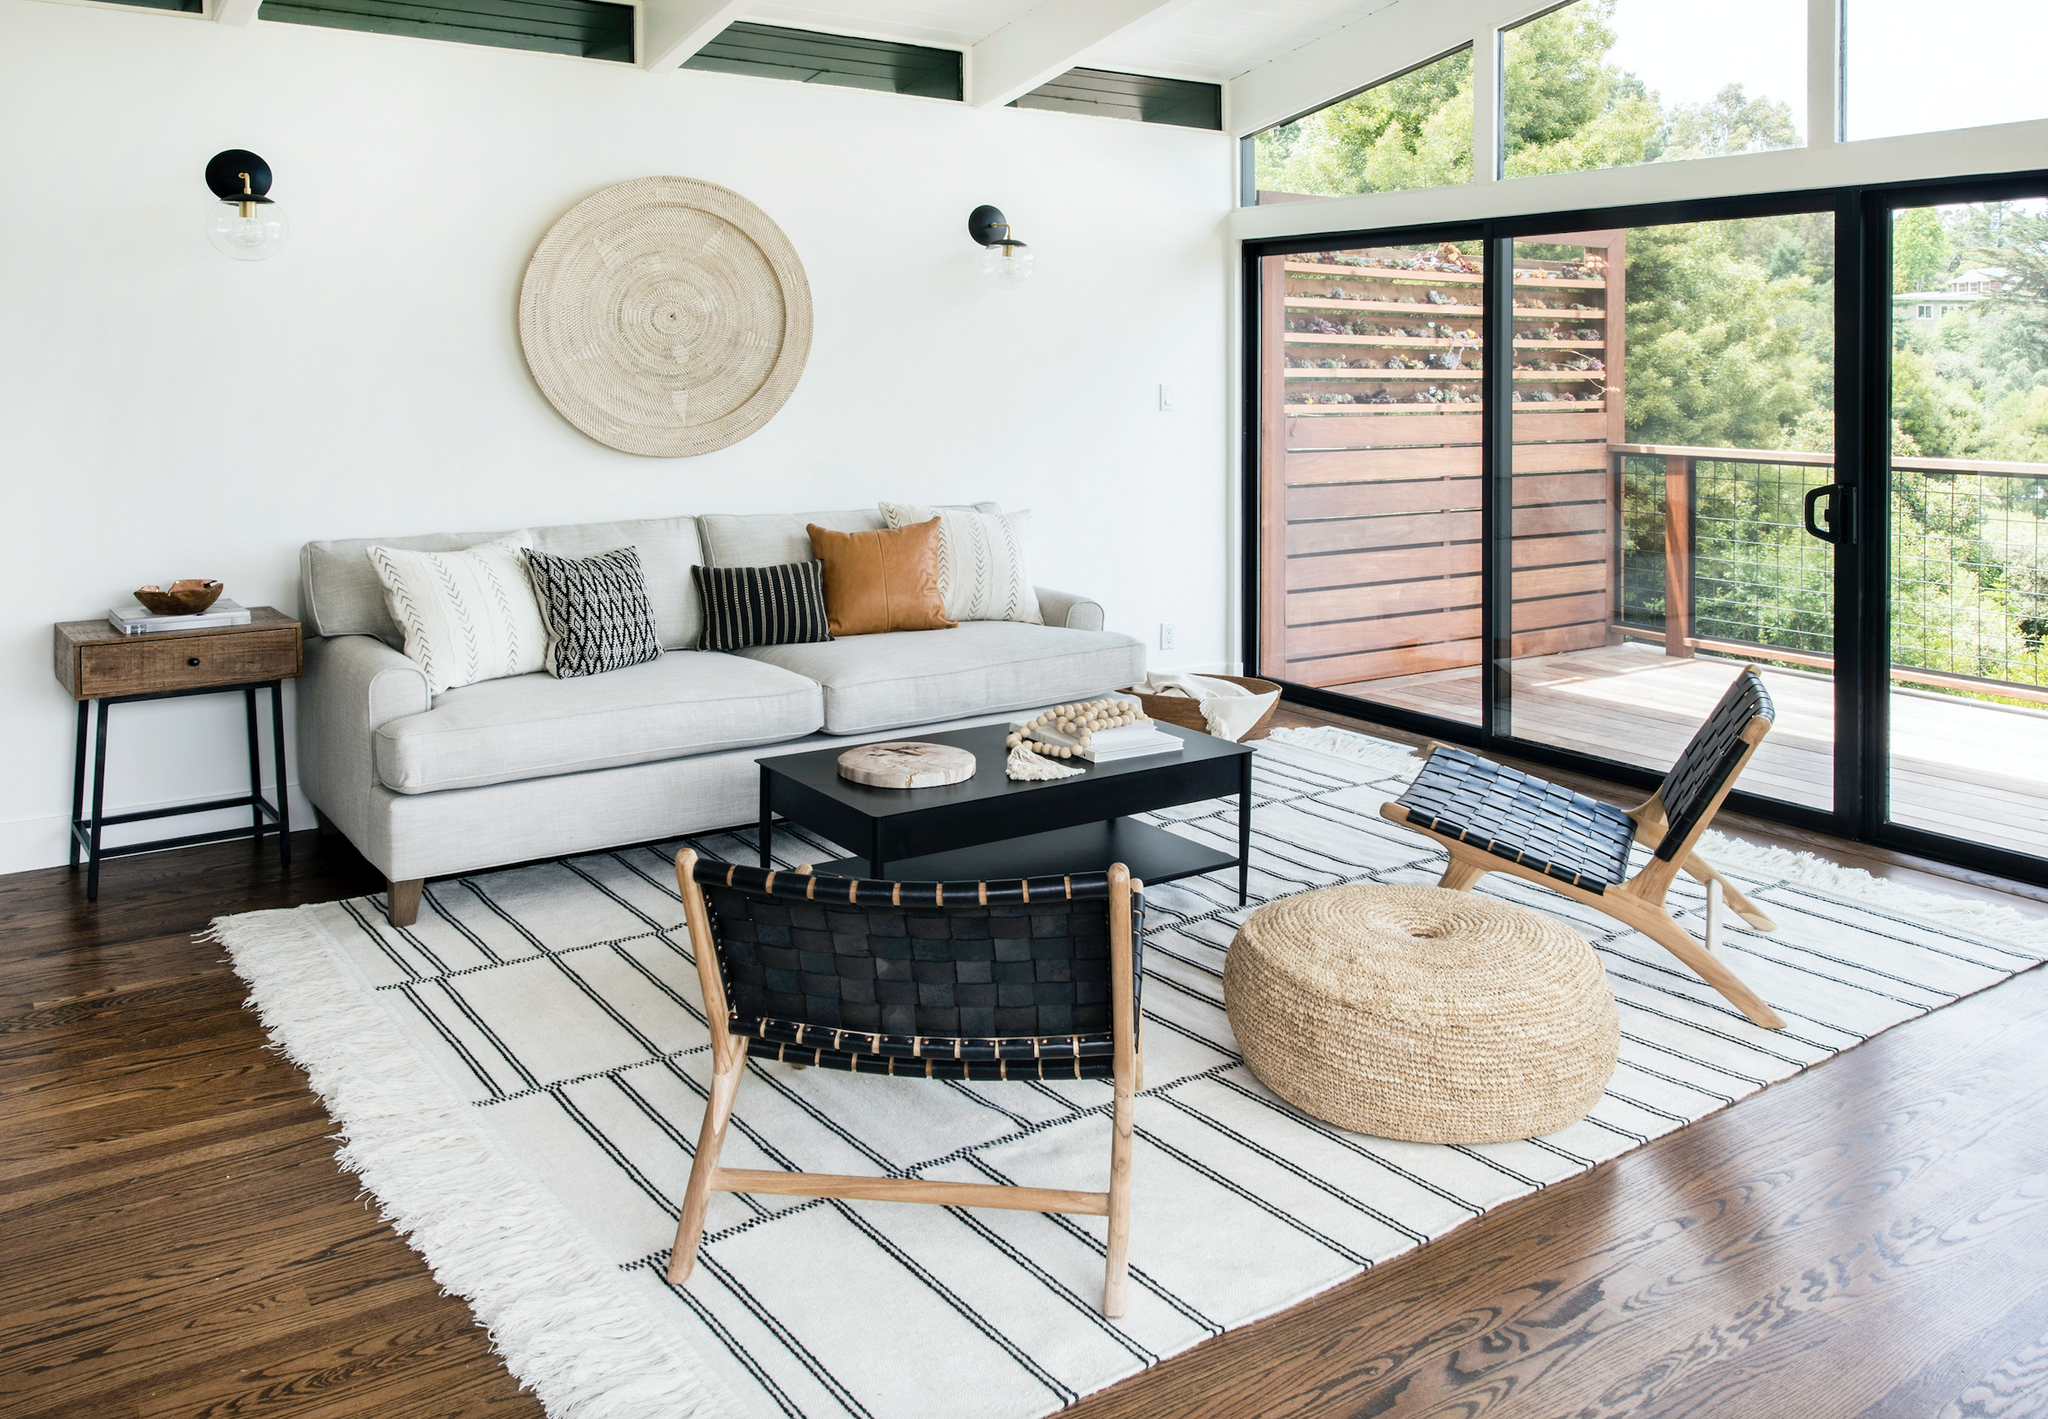 Living room area with natural woven poufs, black woven strap lounge chairs, striped rug, black coffee table, decor items, grey sofa, assorted pillow, white walls, wall sconces, sliding glass door, and hanging wall basket in Mill Valley Mid Century.